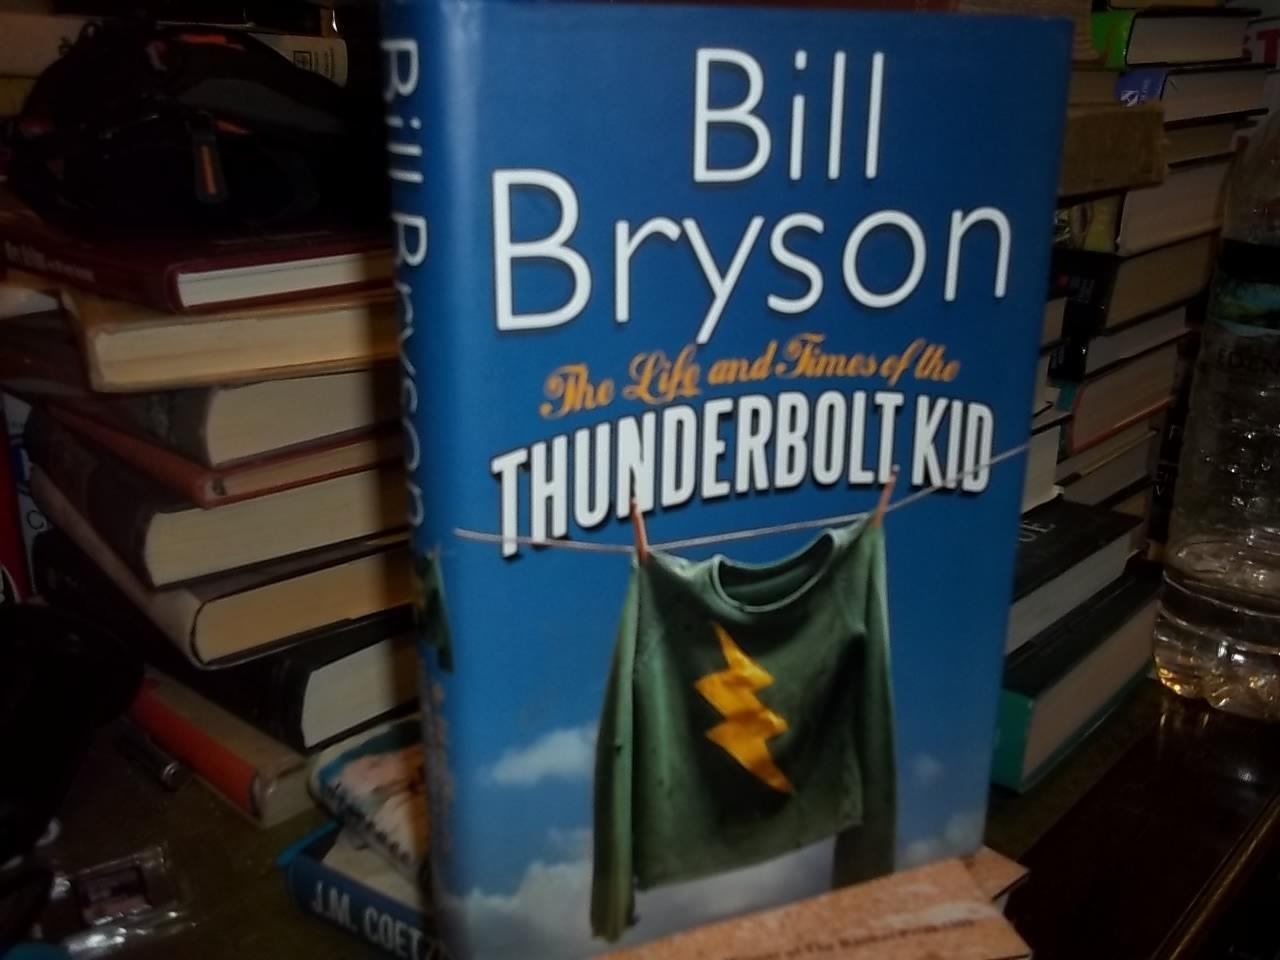 the life and times of the thunderbolt kid bryson bill